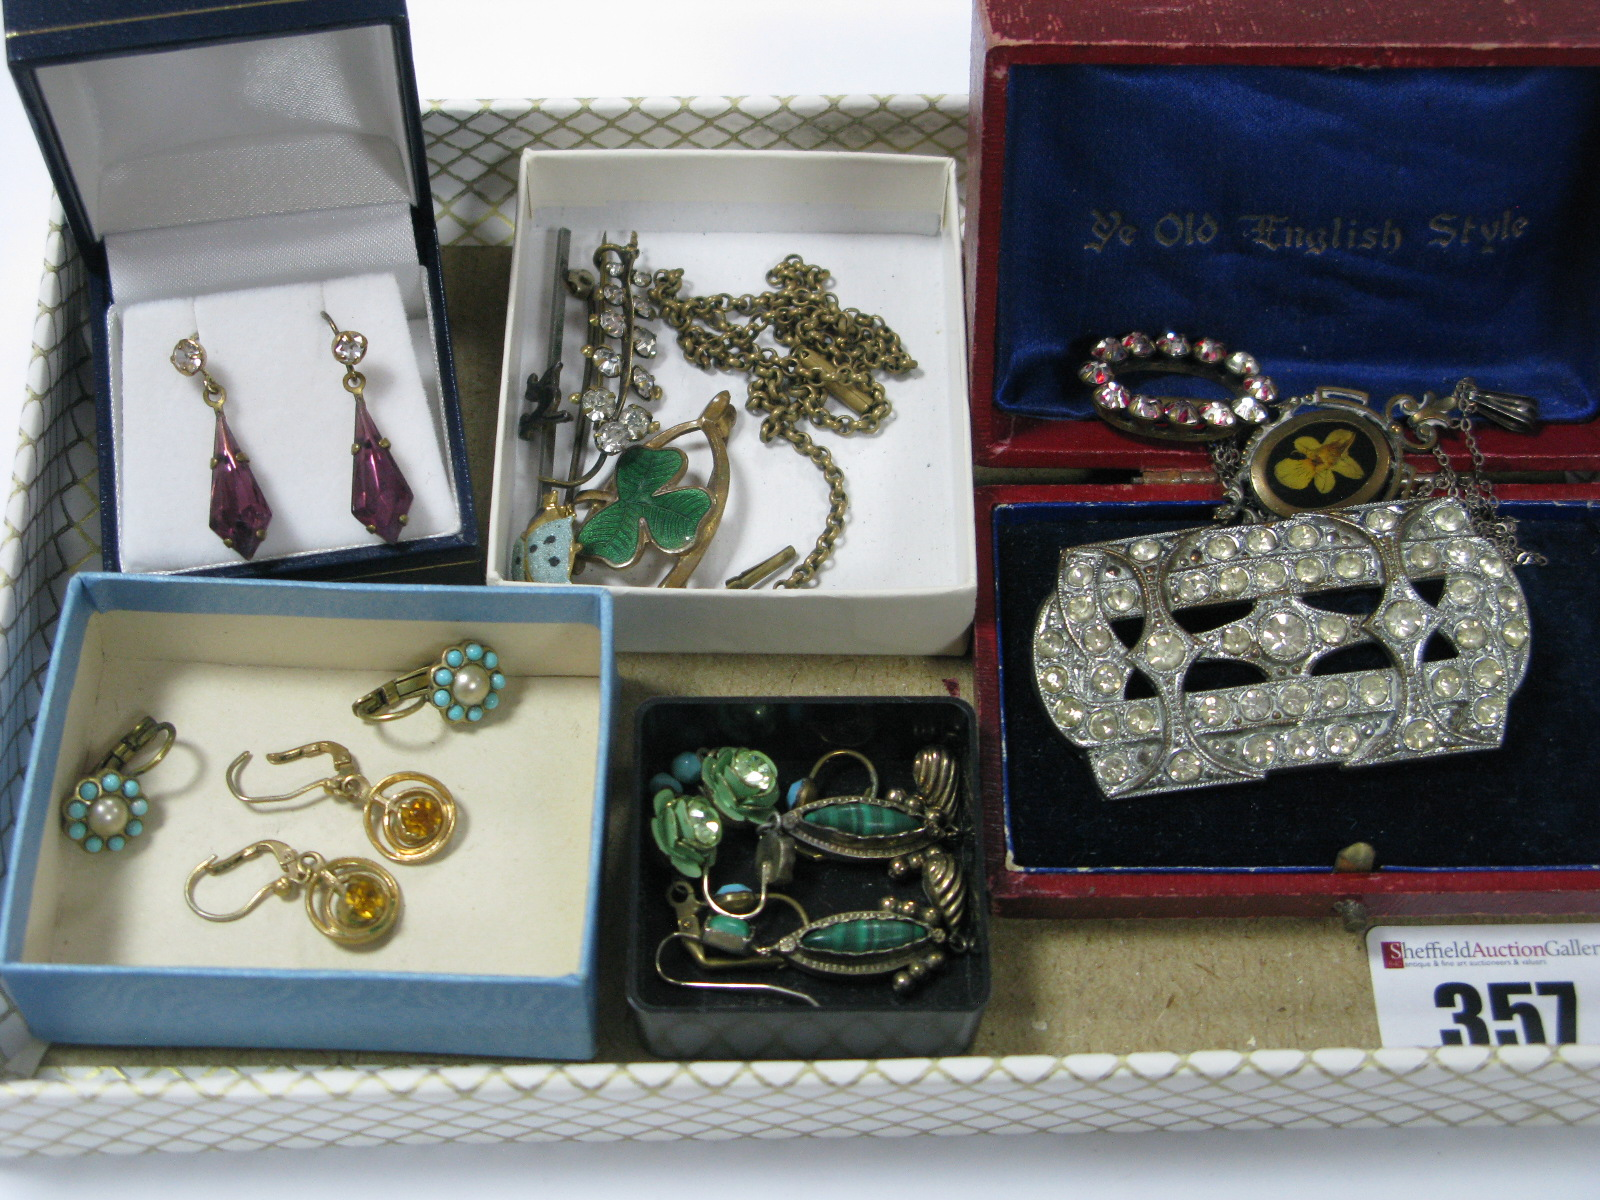 Lot 357 - A Small Mixed Lot of Vintage Style Costume Jewellery, including an enamel shamrock and wishbone